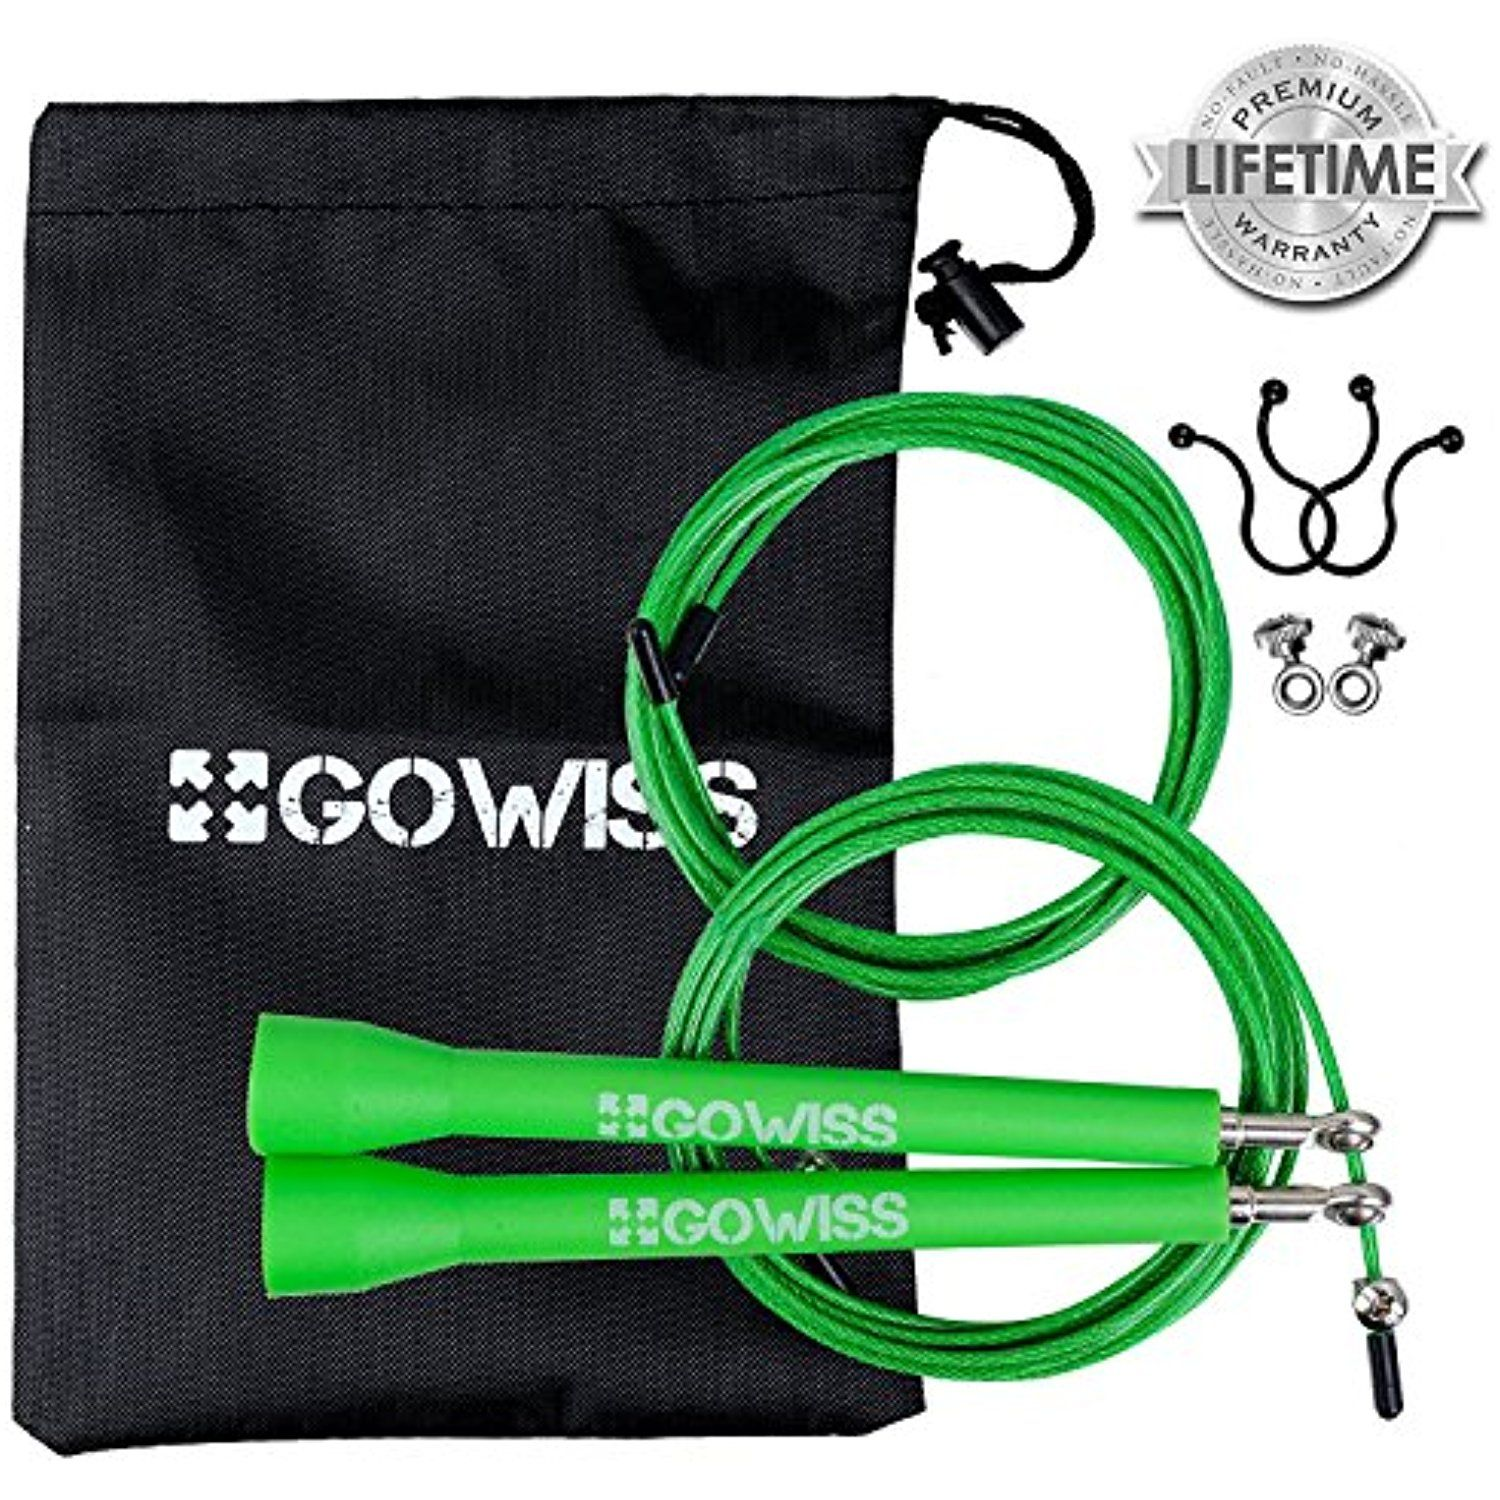 Gowiss jump rope fast speed exercisefitnessaccessories